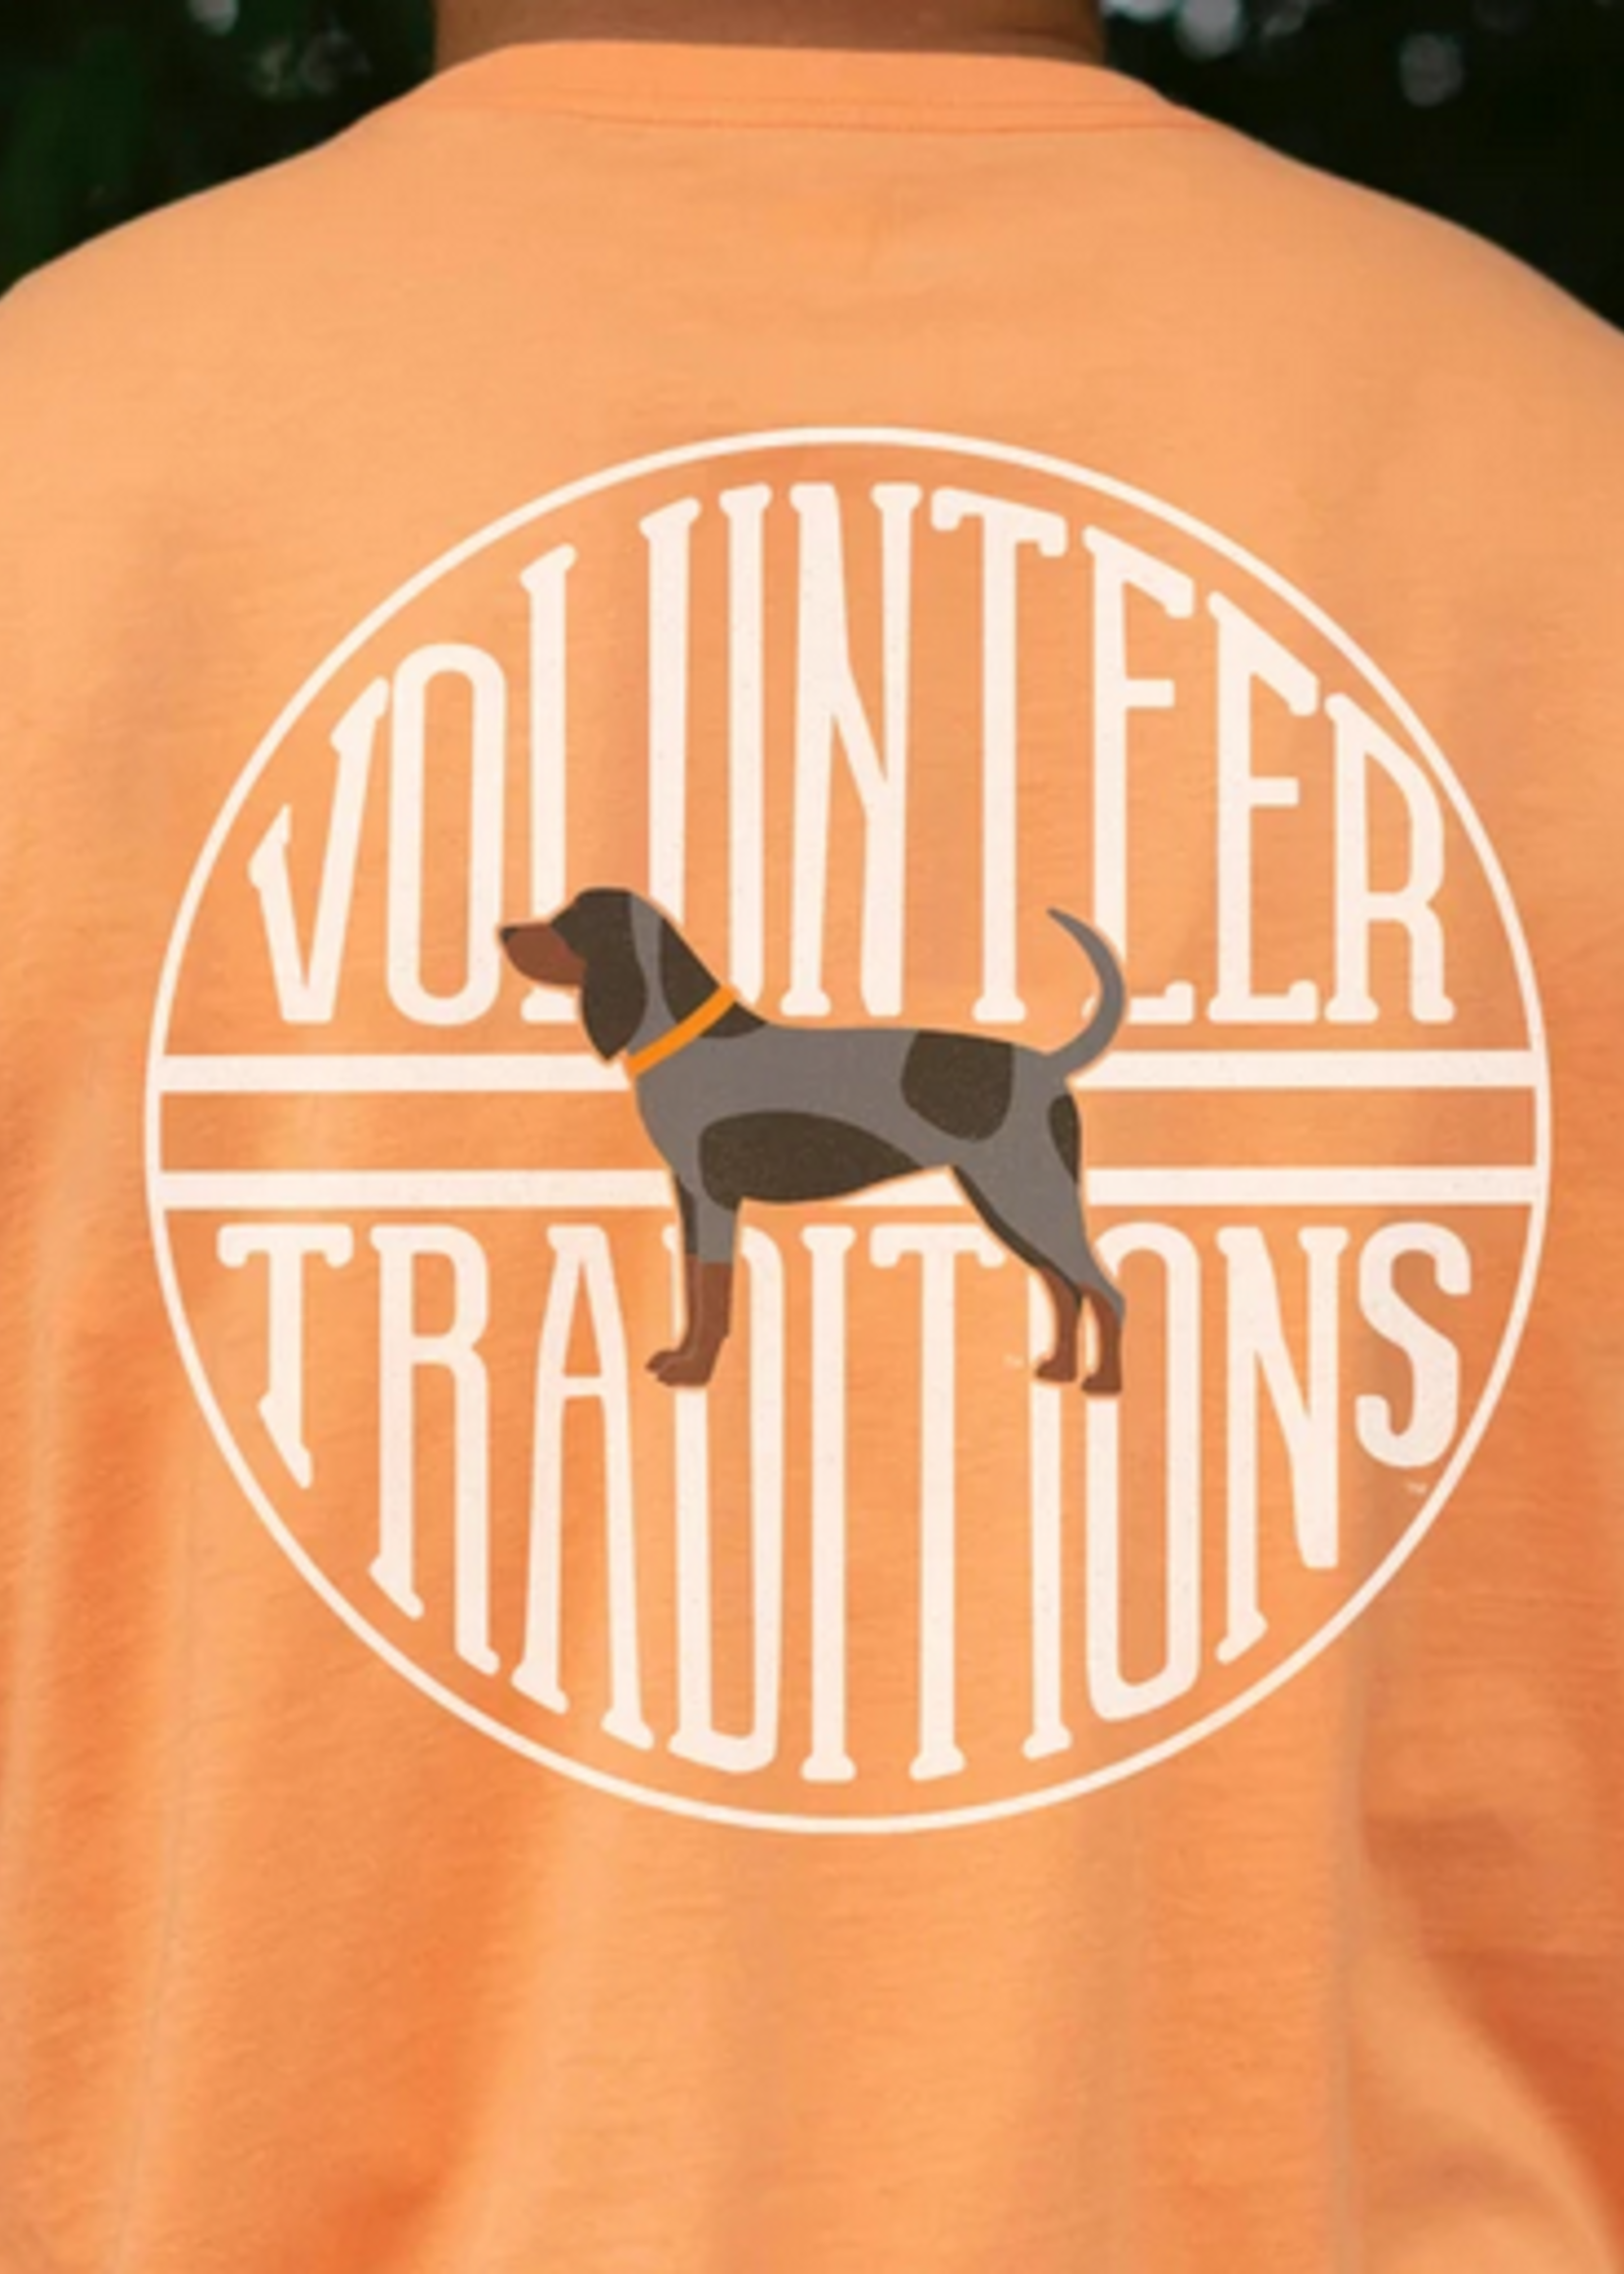 Volunteer Traditions Bluetick Pocket Tee